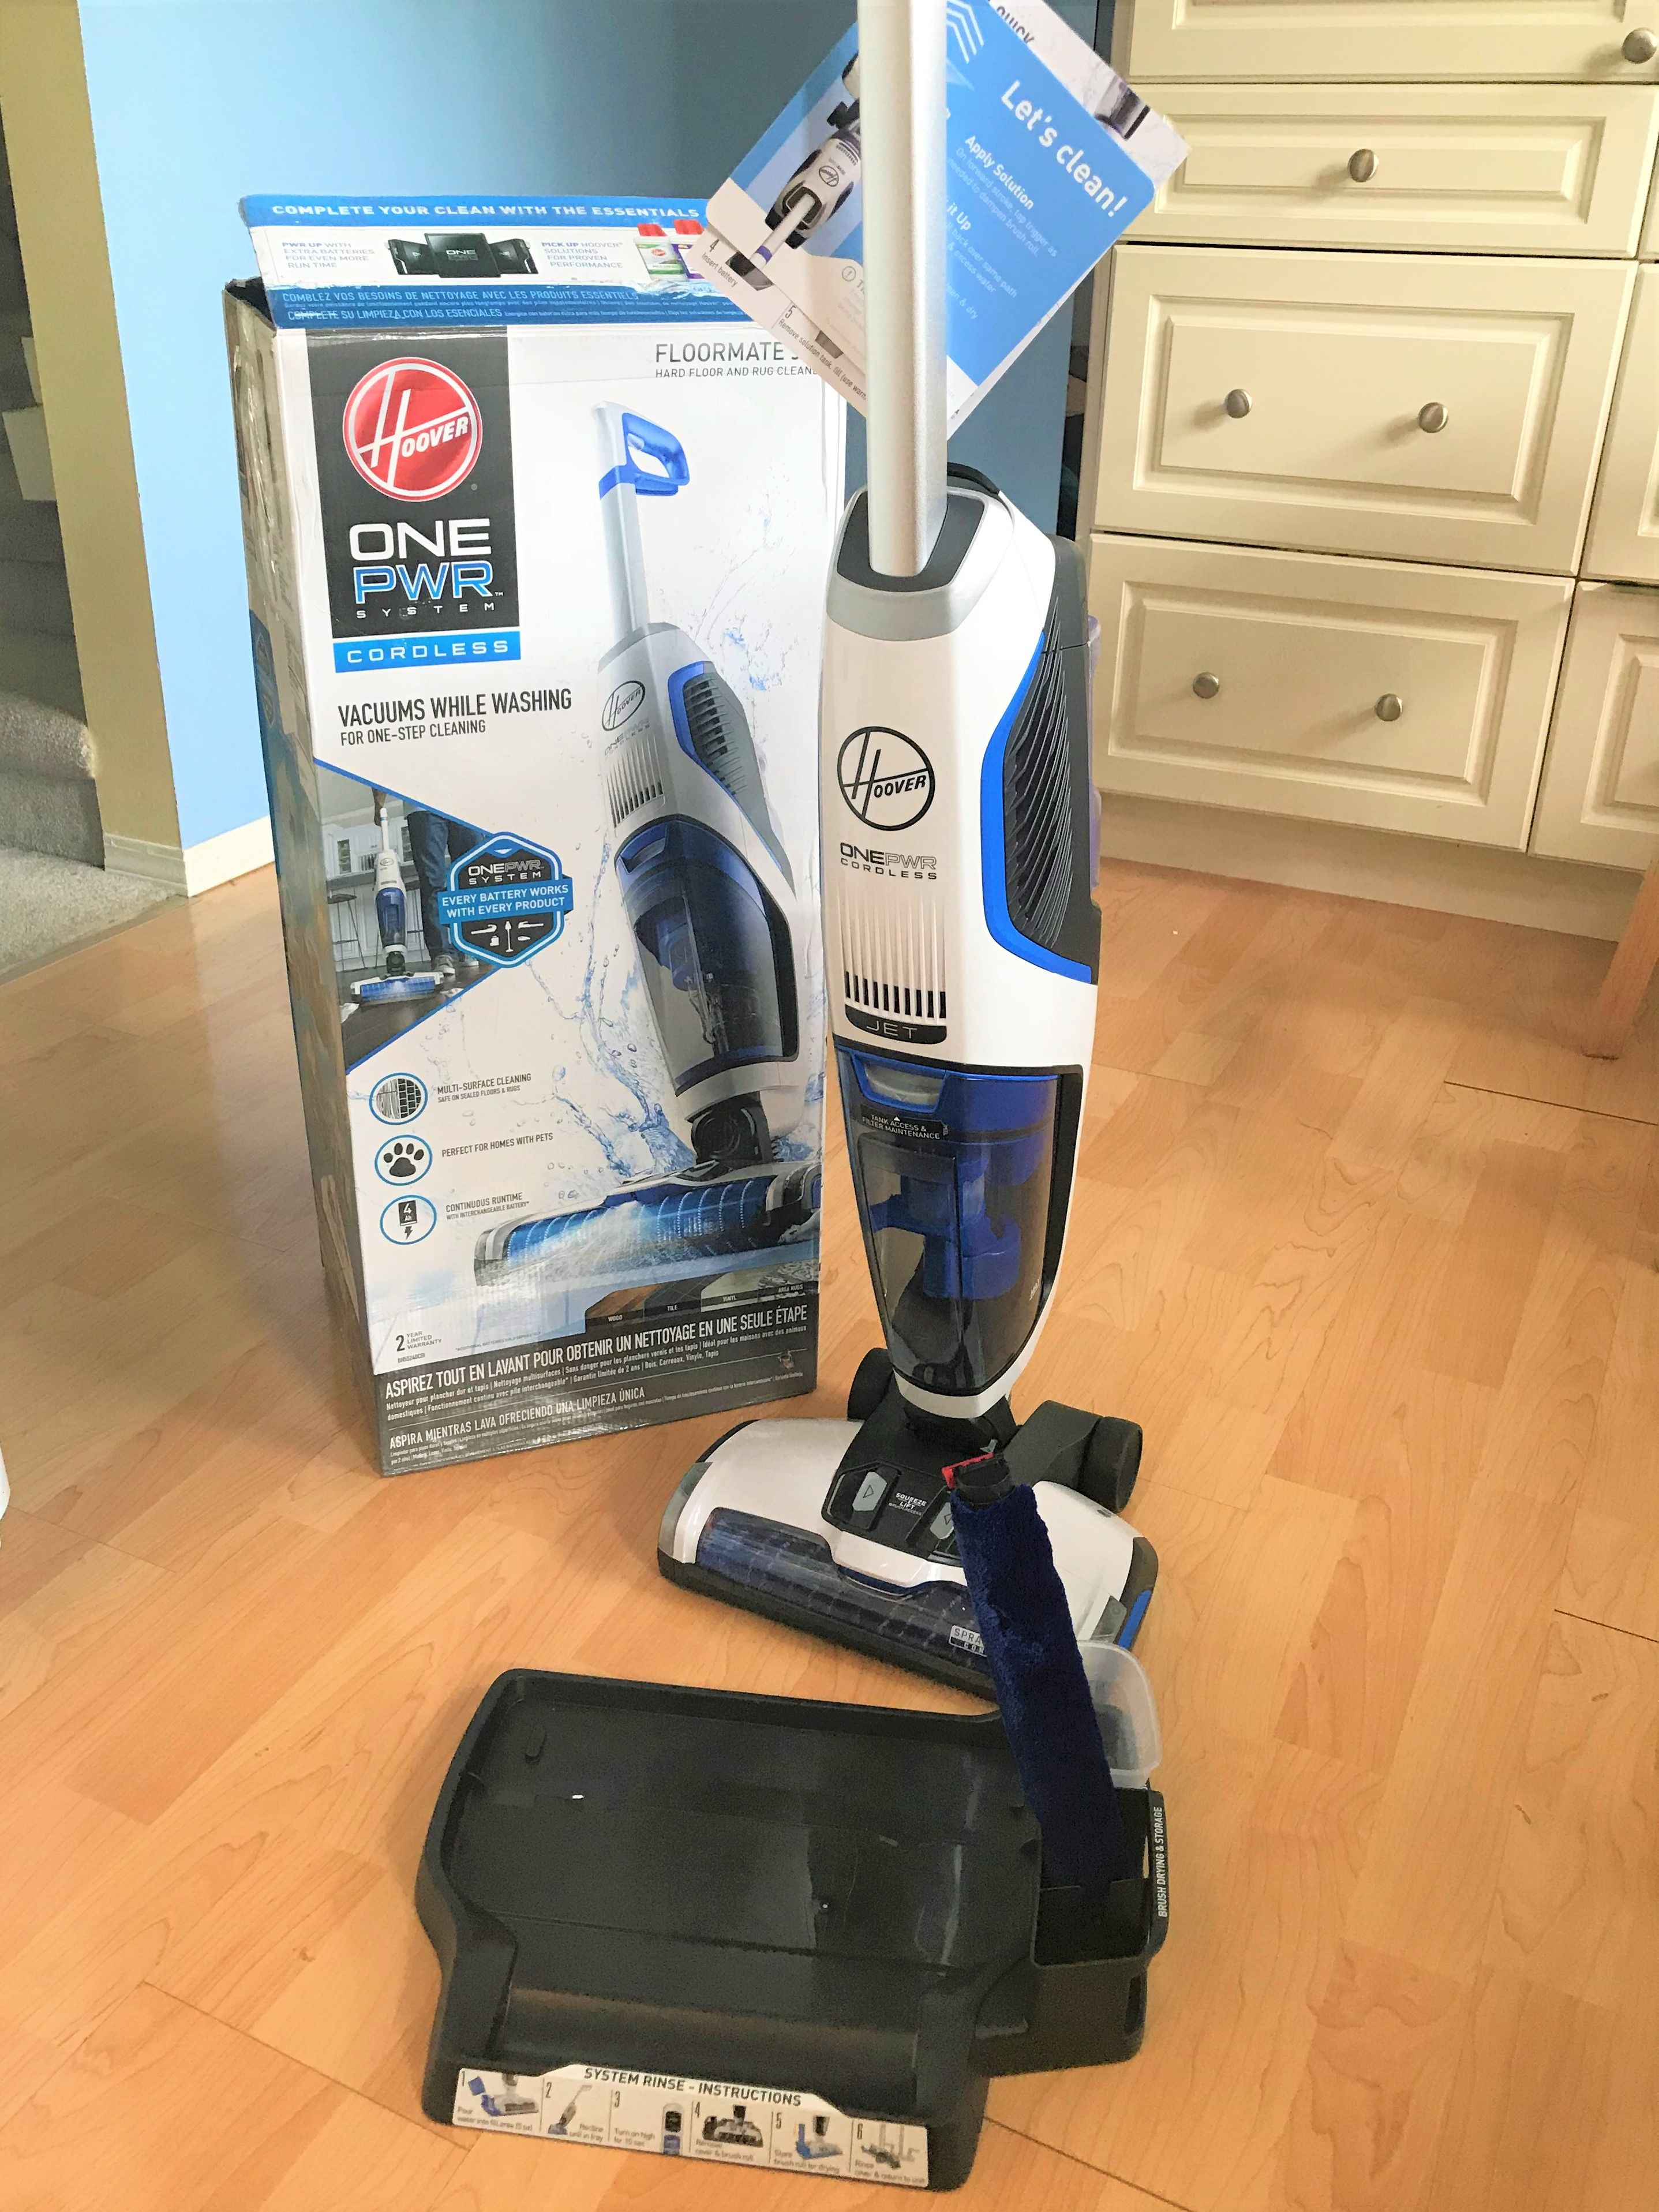 Hoover onepwr floormate jet giveaway mommys weird